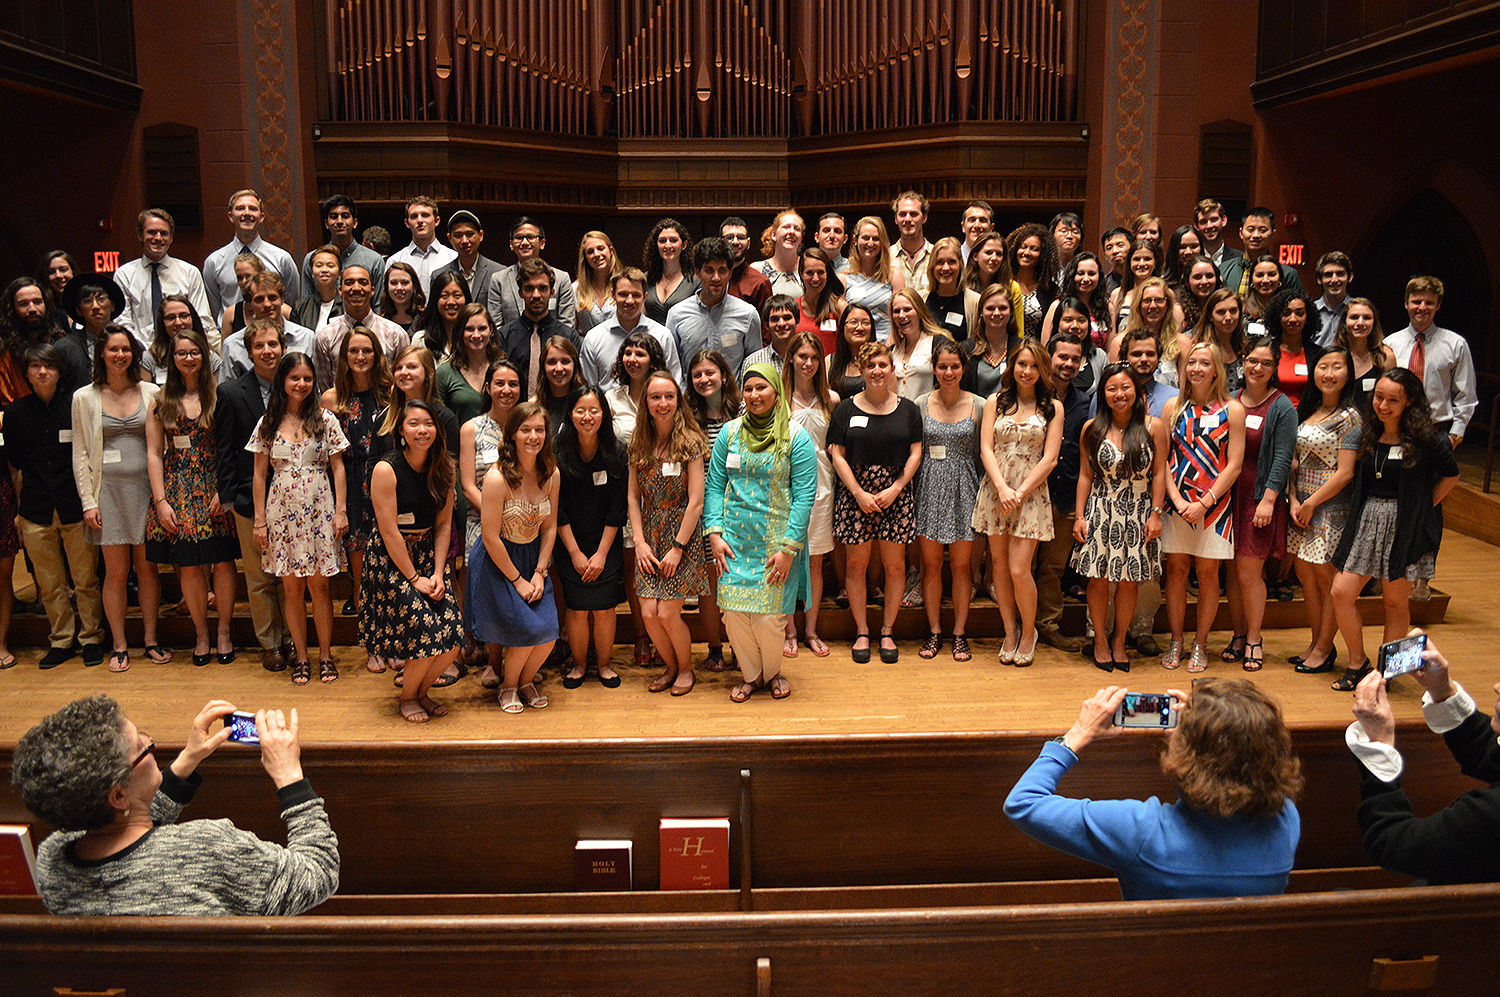 Members of the Class of 2016 were inducted into Phi Beta Kappa, a national academic honor society, in the Memorial Chapel on May 21. Jim Citrin P'12 P'14 was the featured speaker for the ceremony. (Photo by Tom Dzimian)